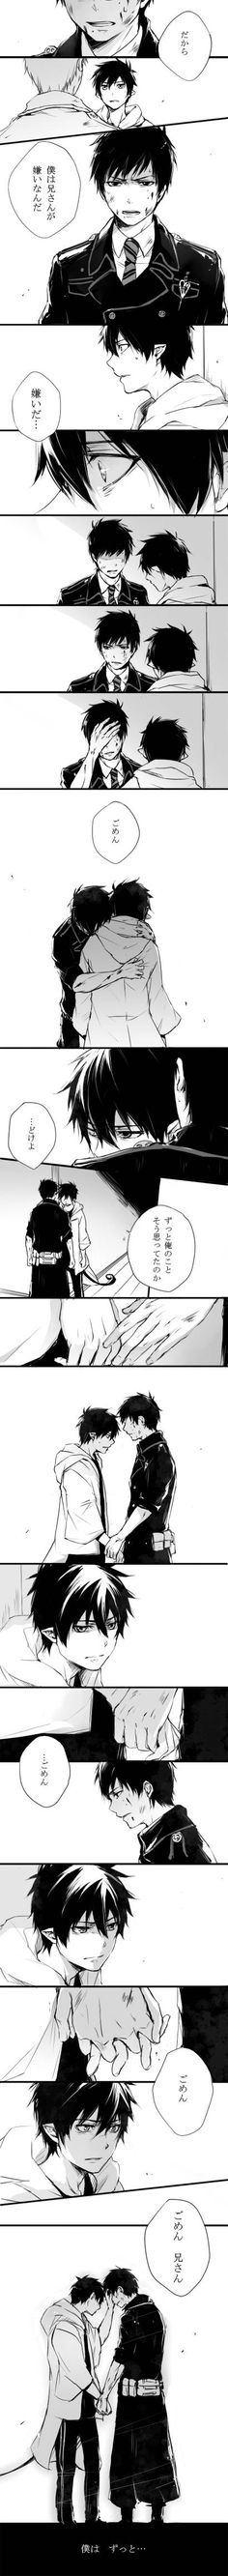 Tags: Anime, Injury, Ao no Exorcist, Okumura Rin, Okumura Yukio, Face To Face